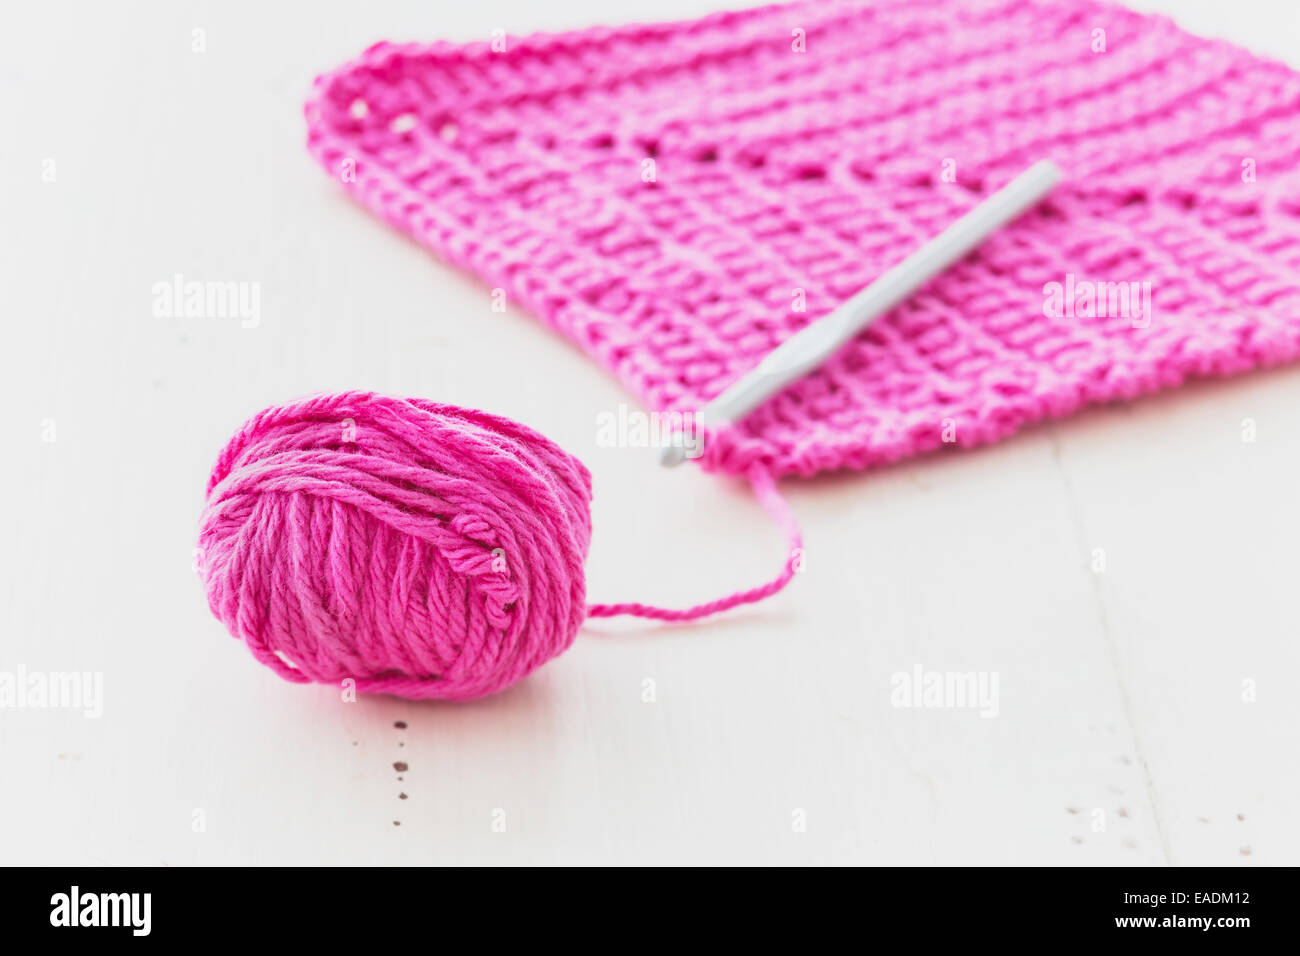 Homemade crocheted dishcloth with crochet hook and - Stock Image